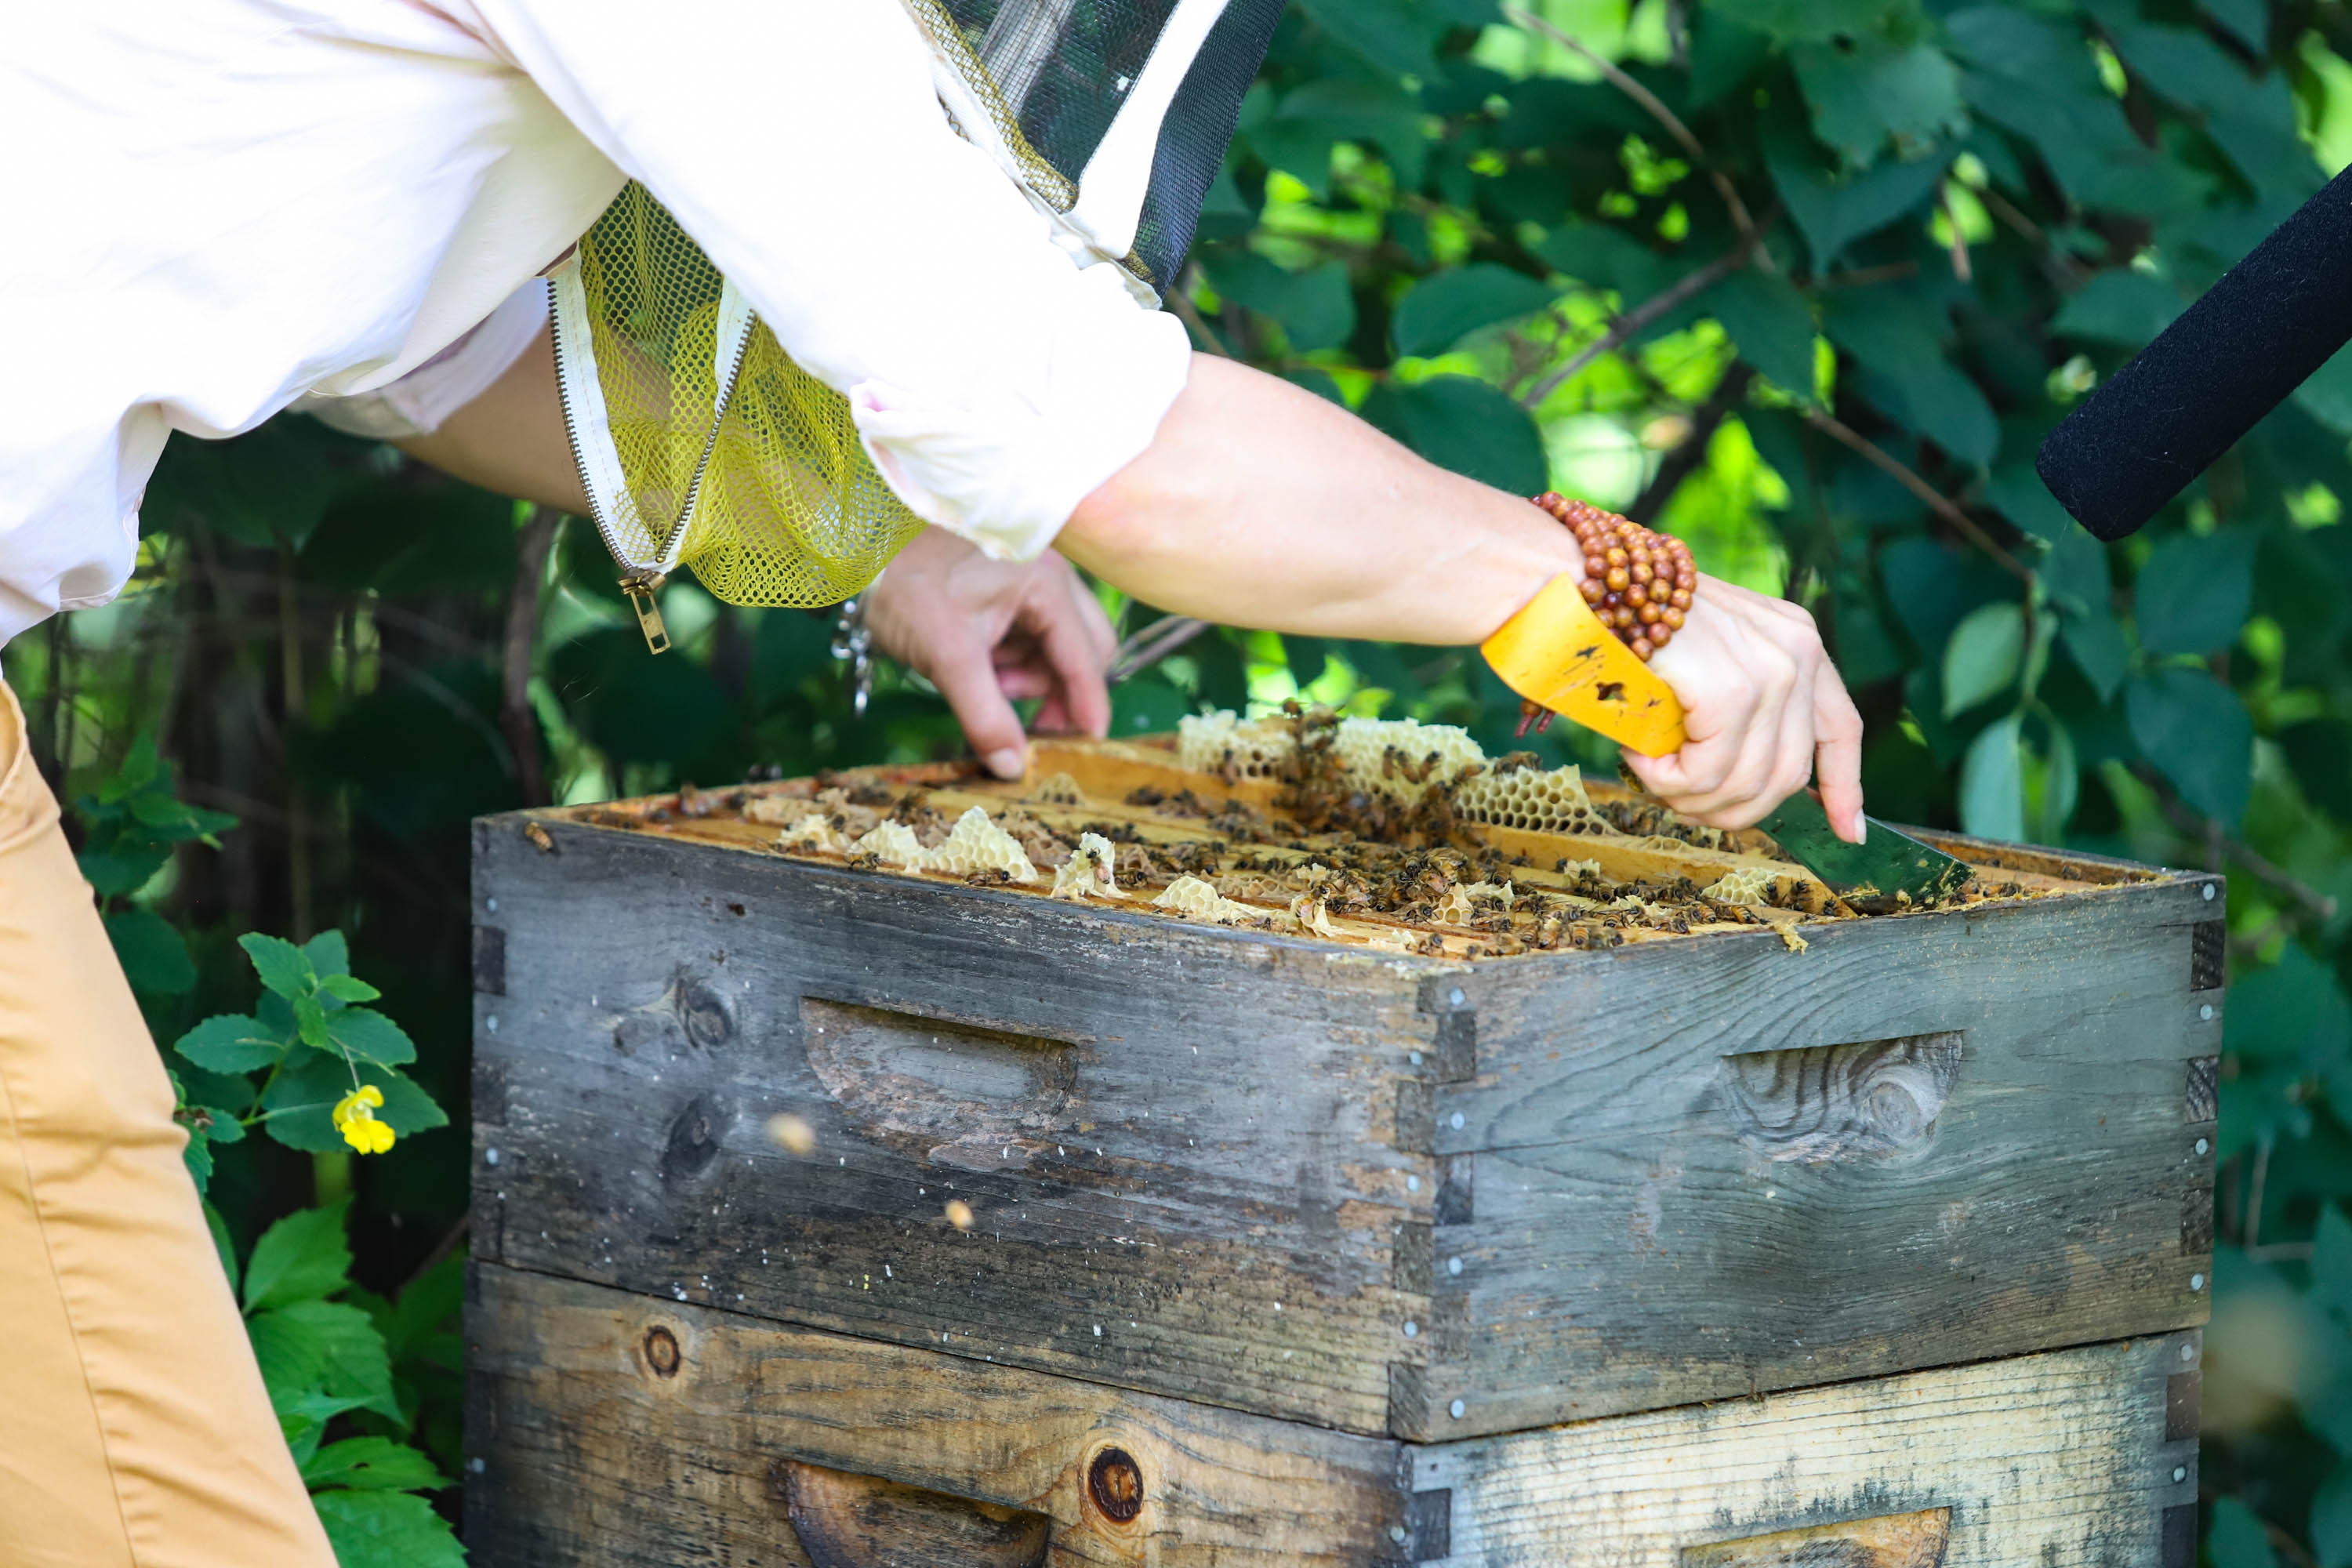 Heather opens the first level of her hive. The hive currently has around 60,000 bees. <em>Shannon Henry Kleiber (TTBOOK)</em>